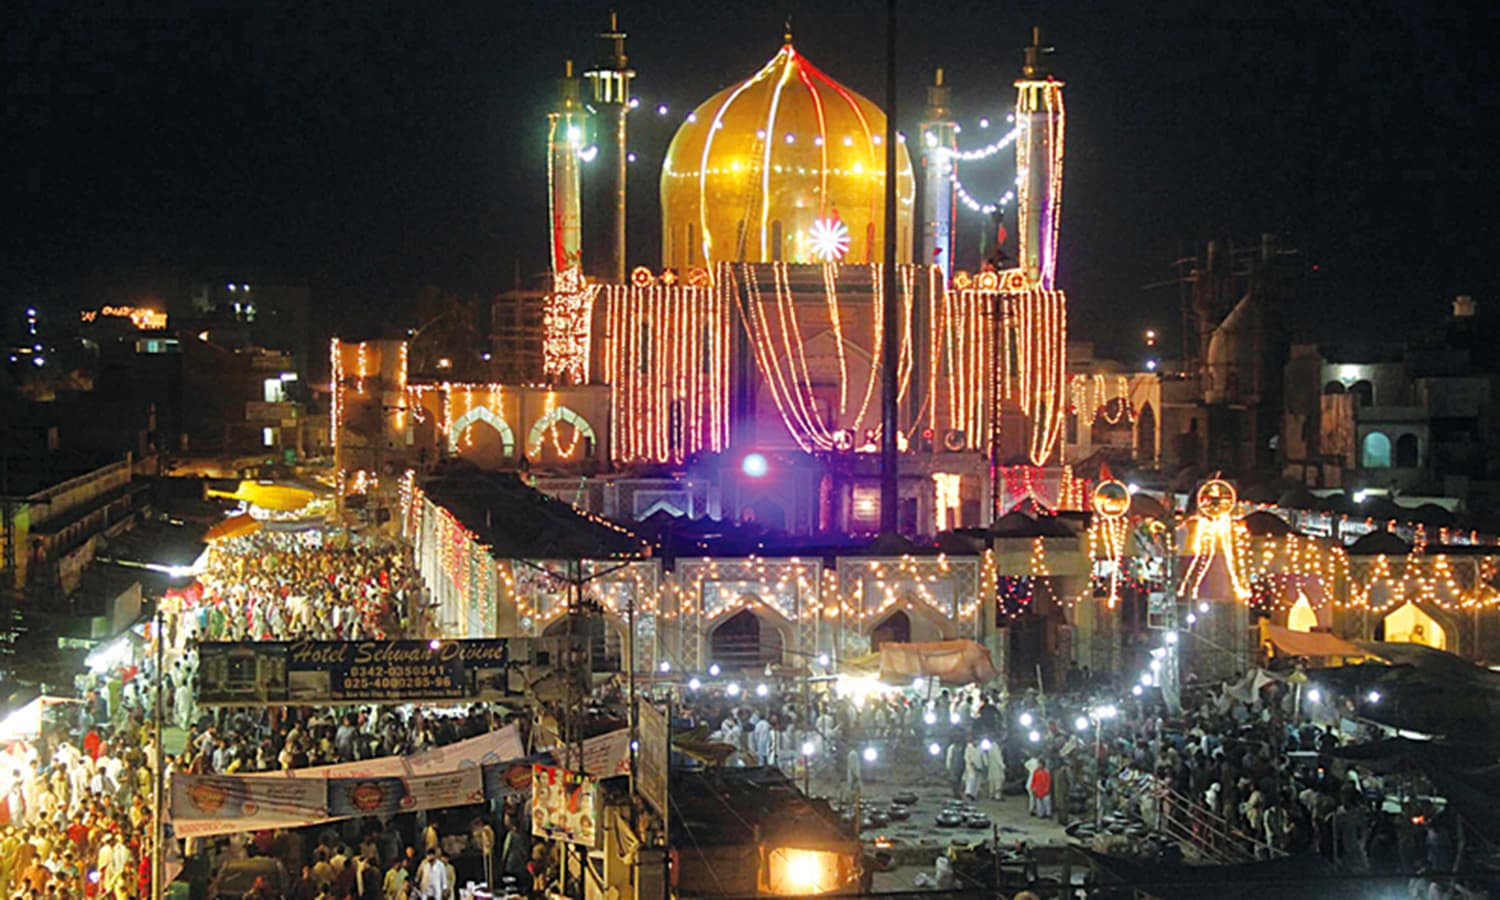 Devotees and pilgrims throng at the shrine of a famous Sufi saint in the Sindh city of Shewan.